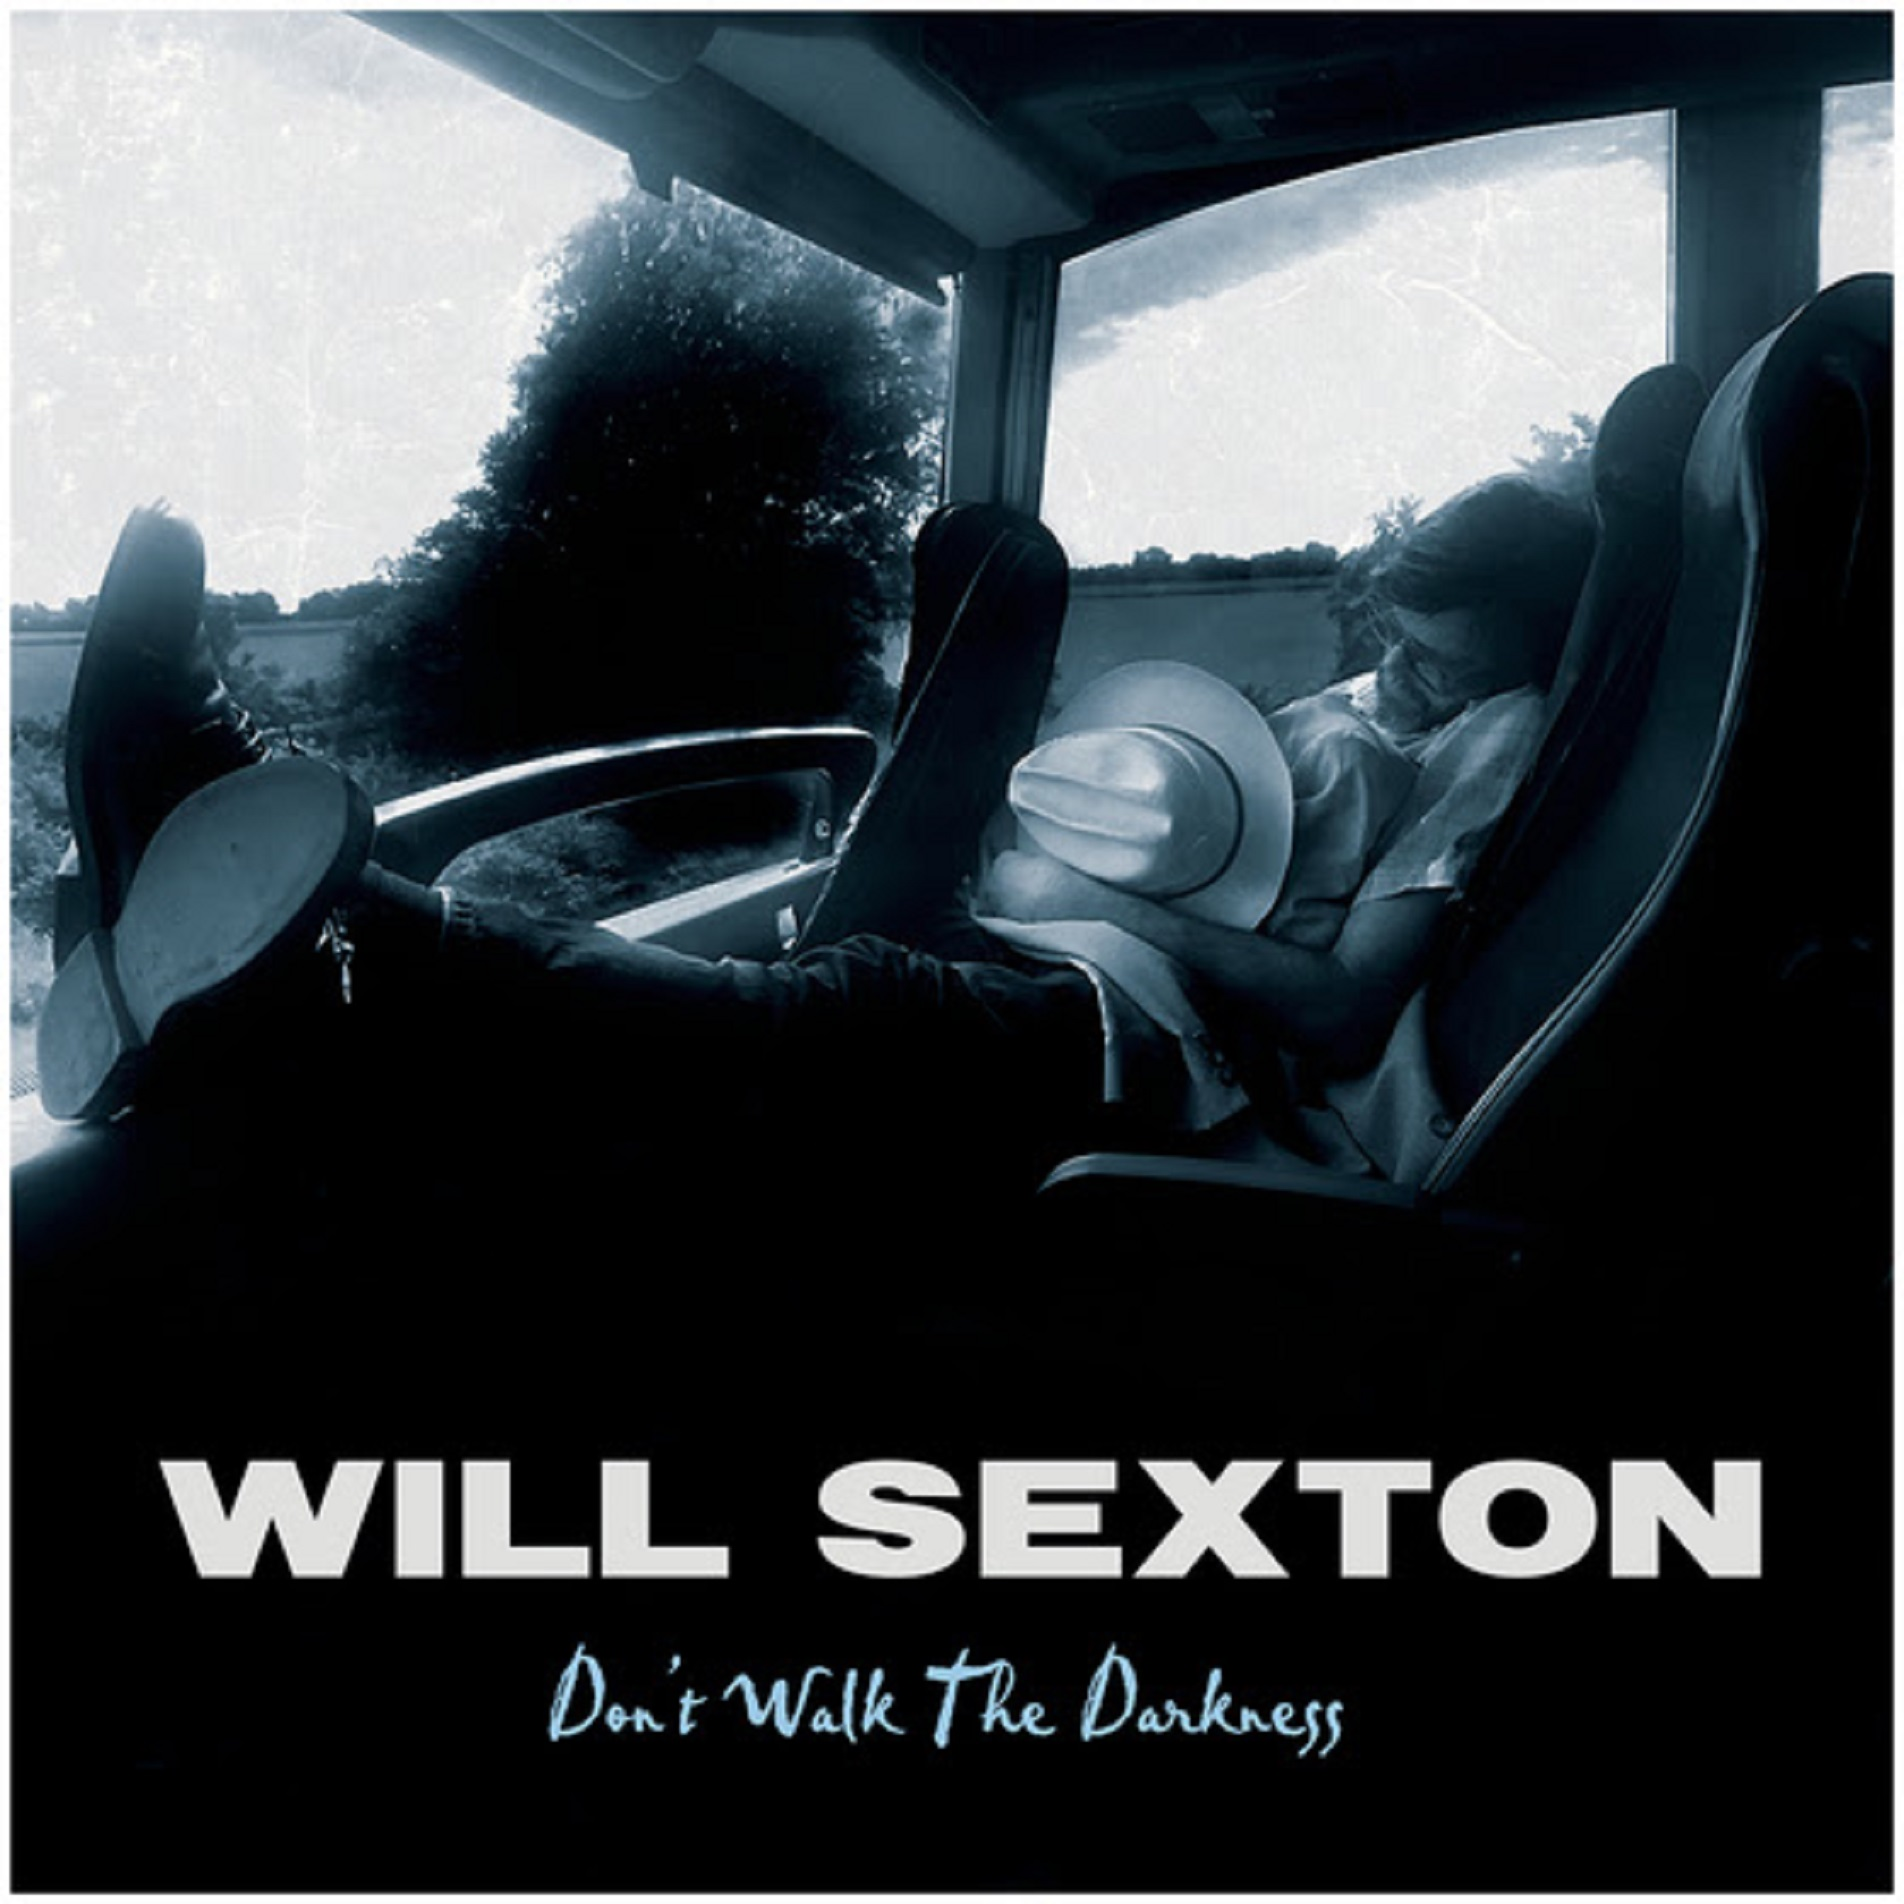 Will Sexton, Texas guitar legend, returns with first solo album in over a decade